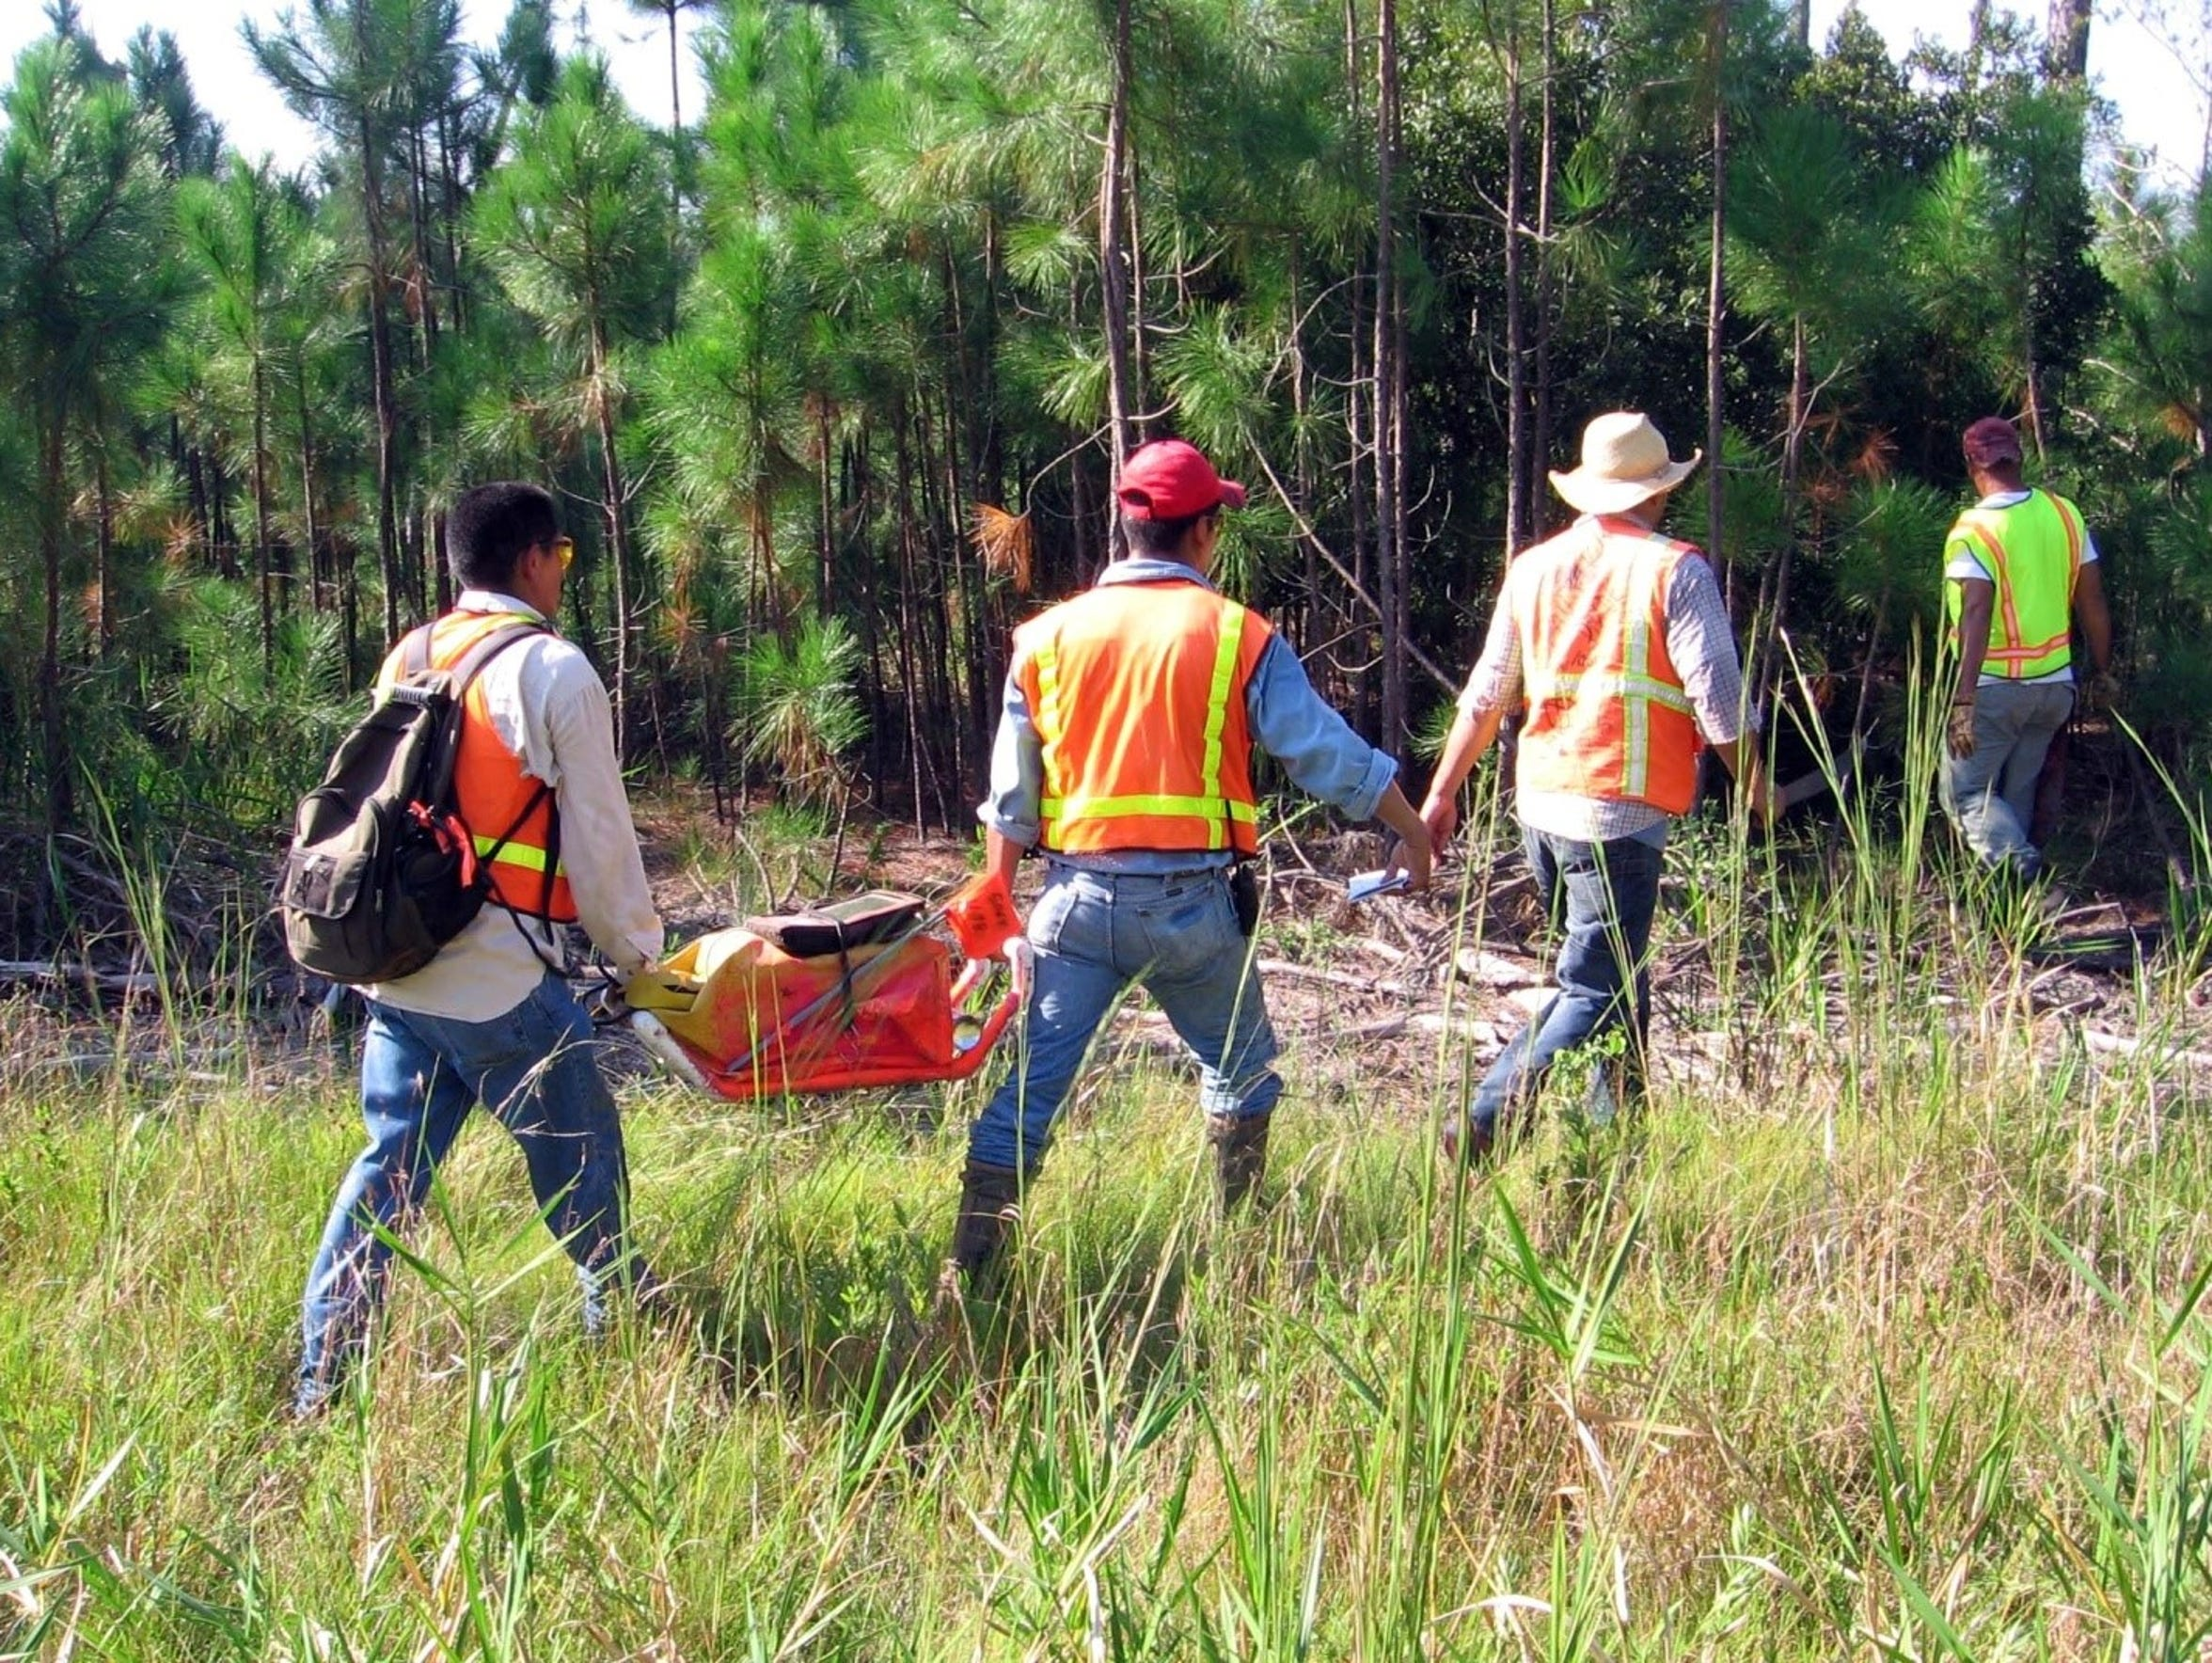 Survey crews carry equipment into a wooded area in